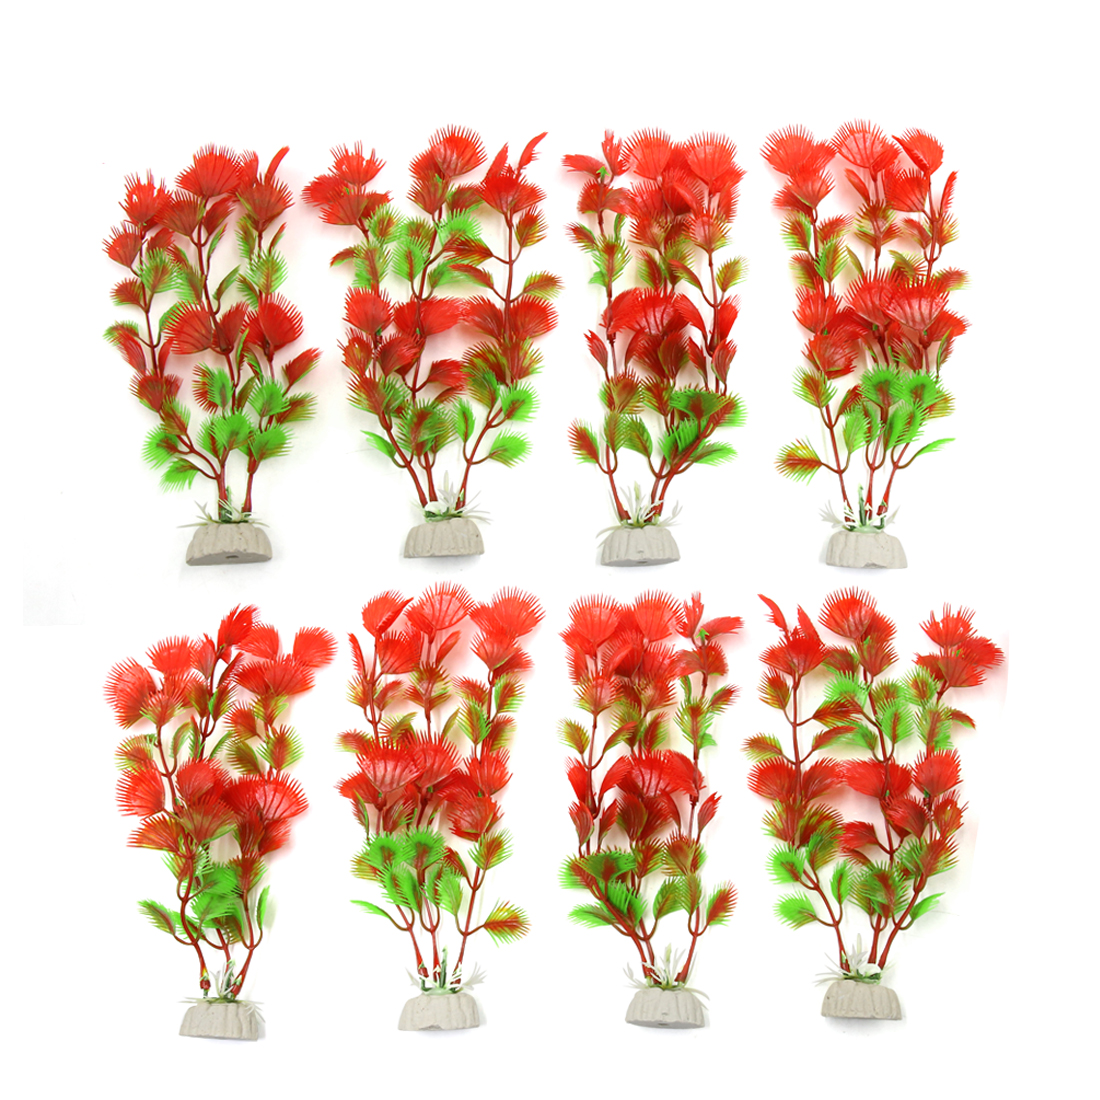 8pcs Red Plastic Aquarium Fish Tank Aquatic Water Plant Decoration Ornament